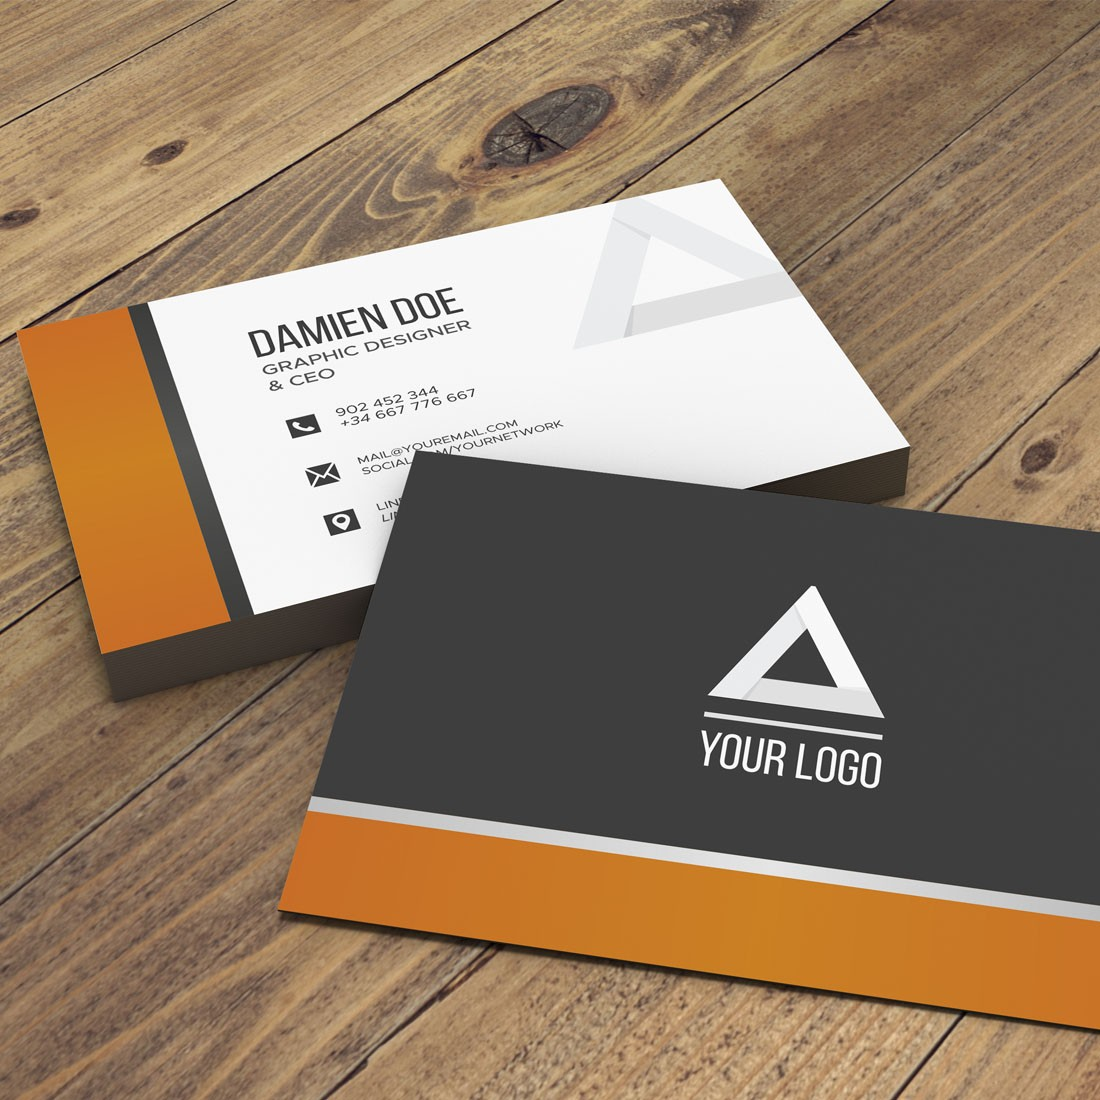 Instant (24 Hours Dispatch) Digital Multi-color Business Cards (4 Color CMYK)